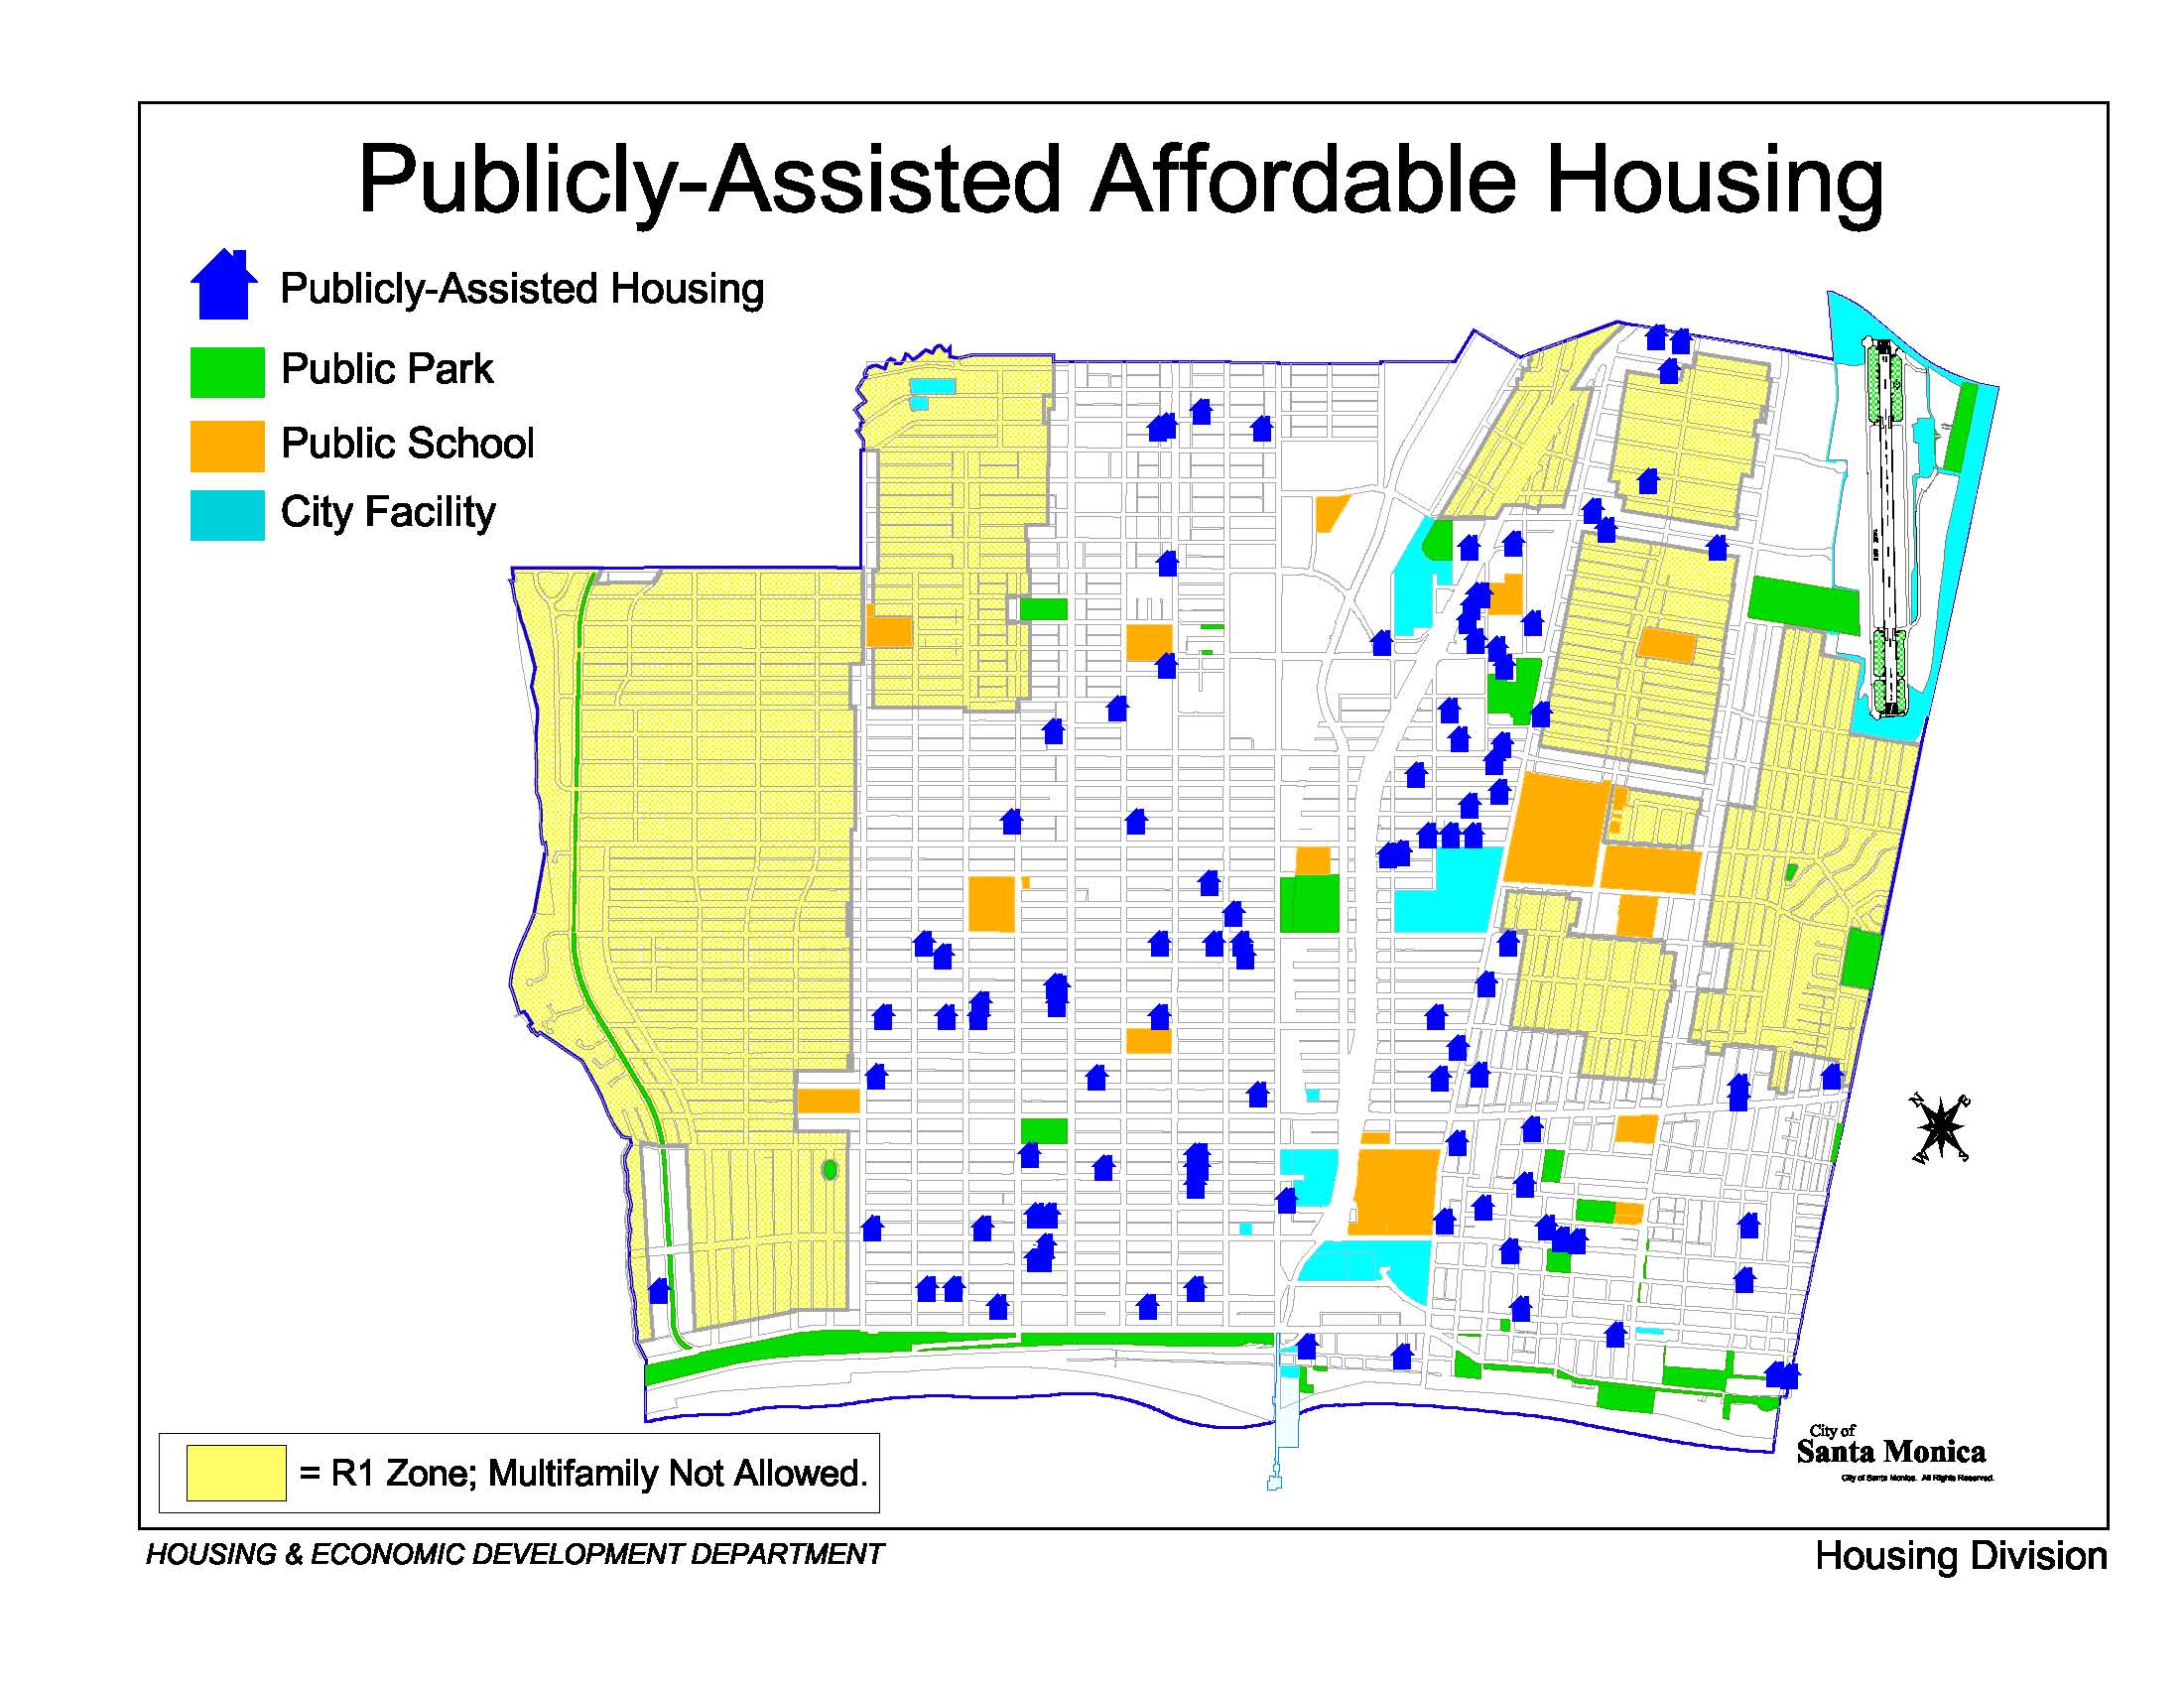 Publicly Assisted Housing Map